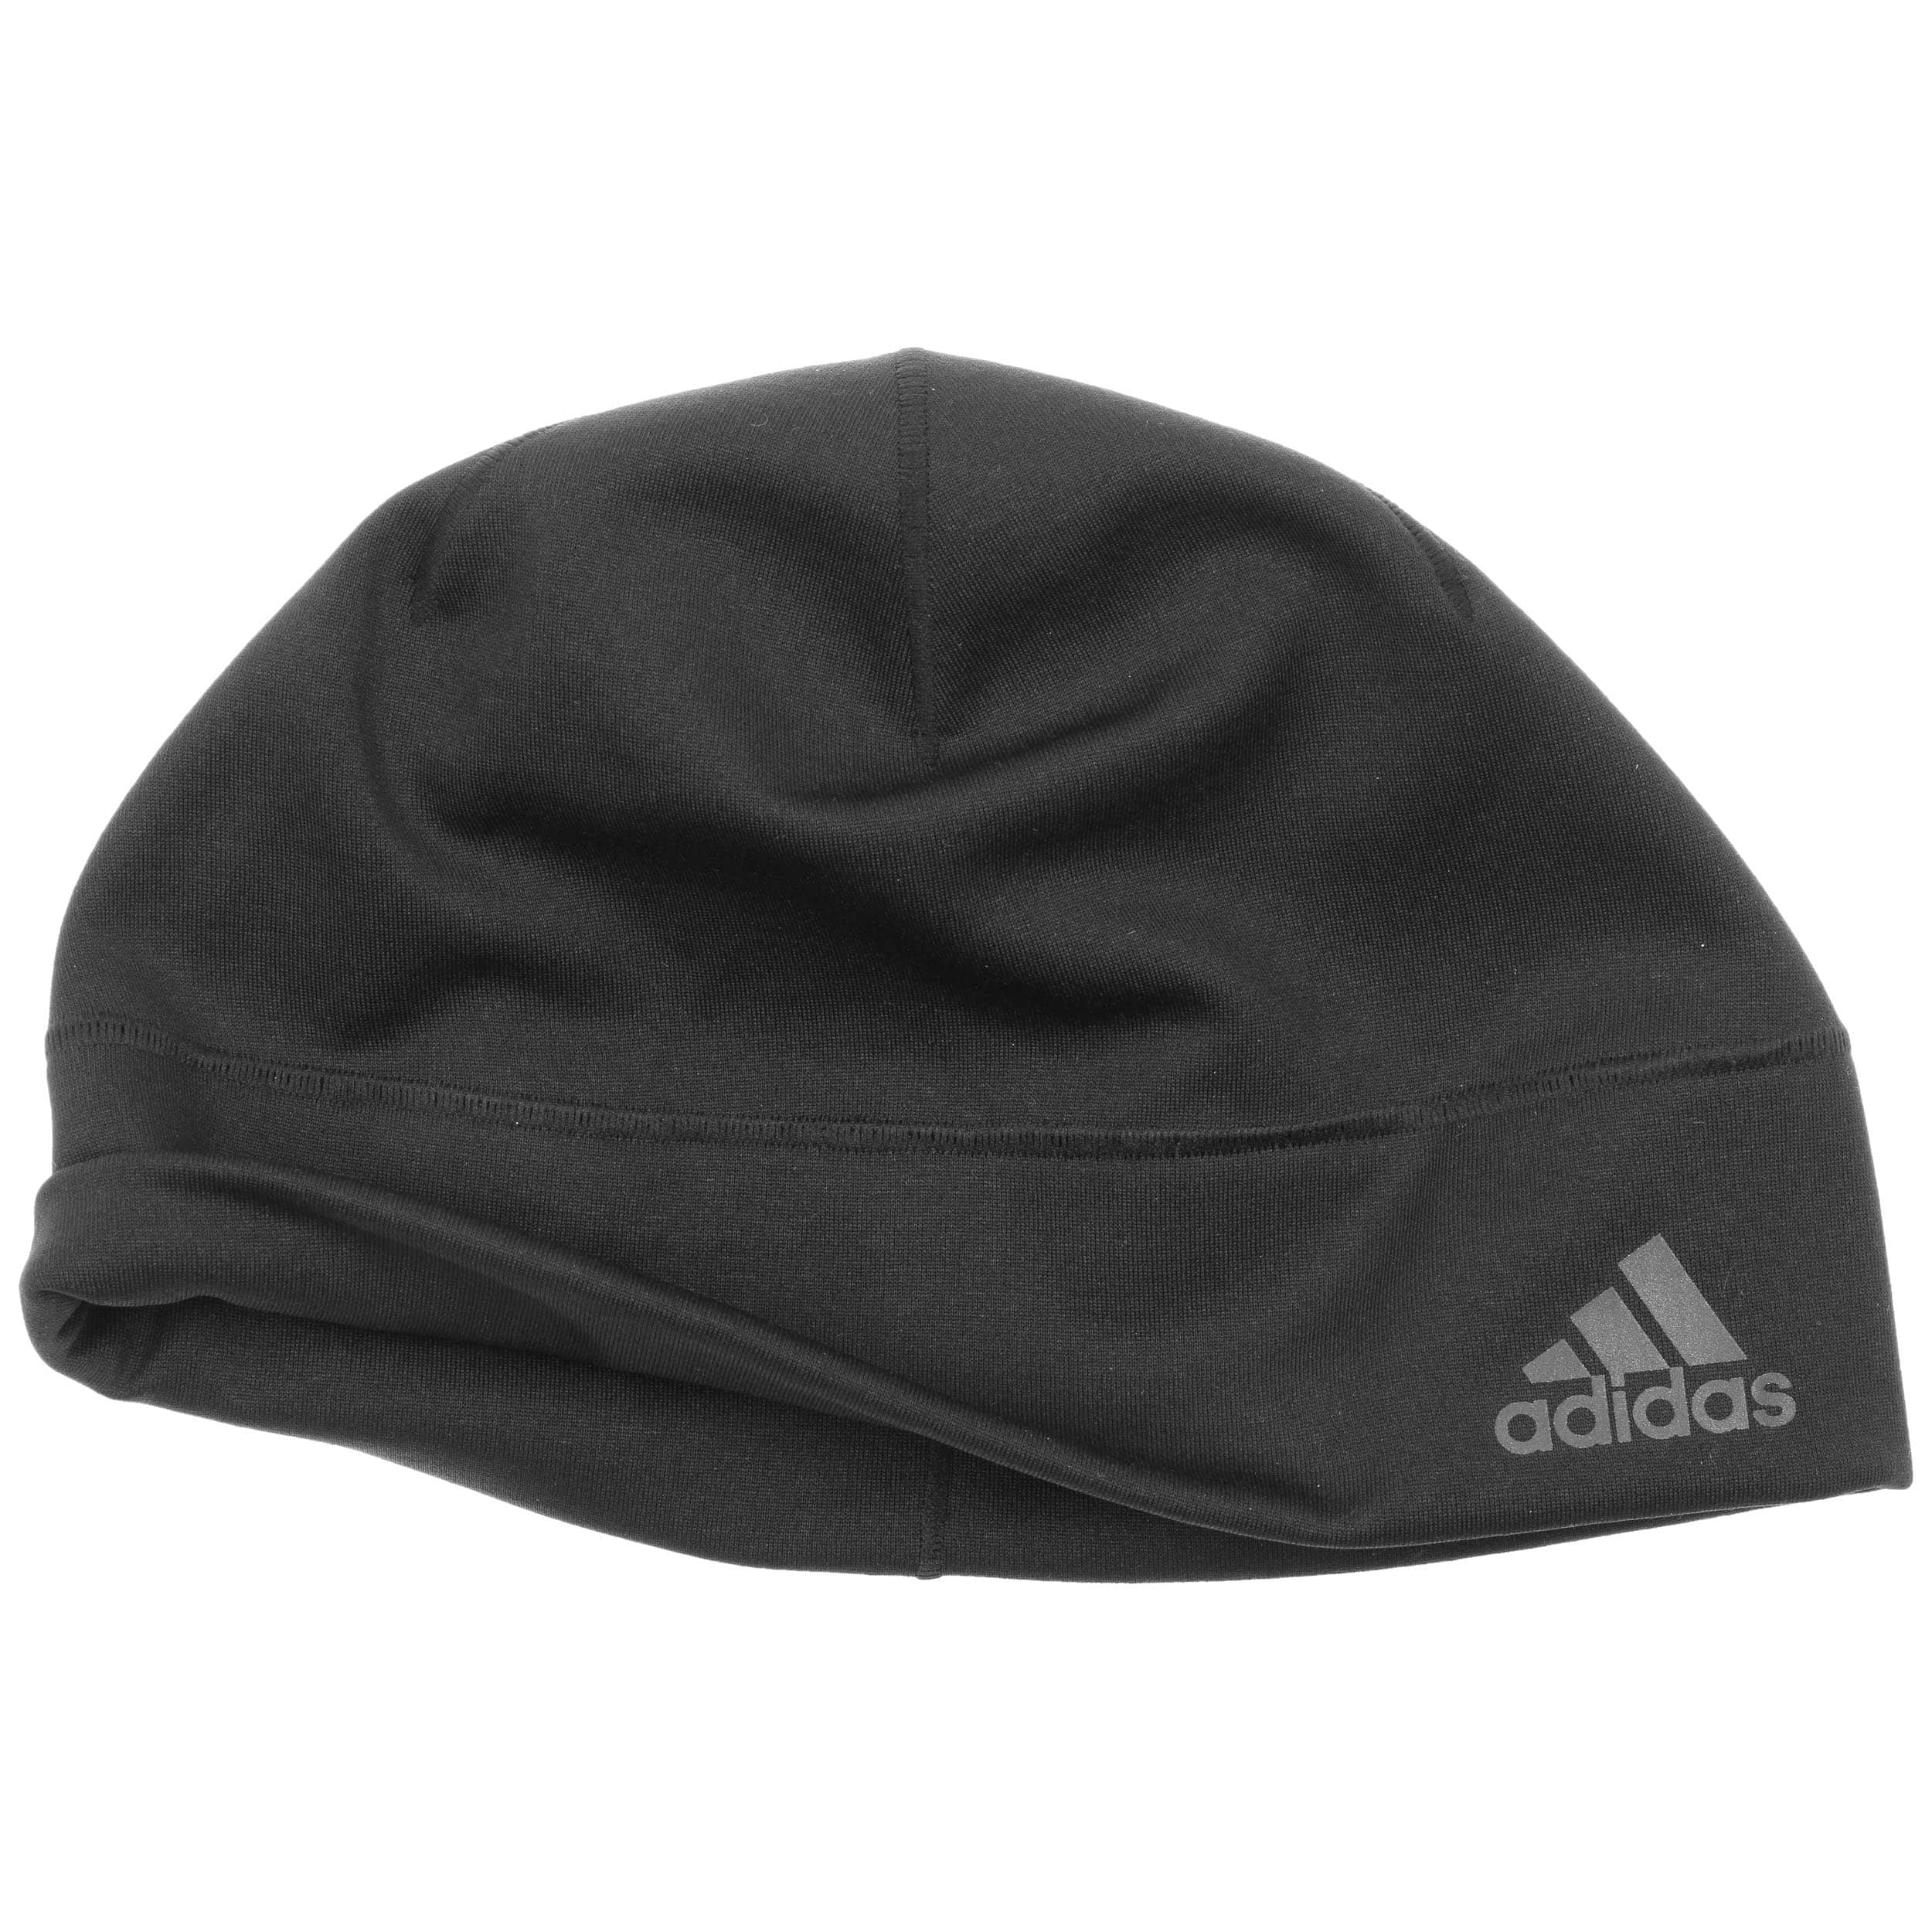 baaf0a658b4 ... Climaheat Performance Beanie by adidas - black 1 ...